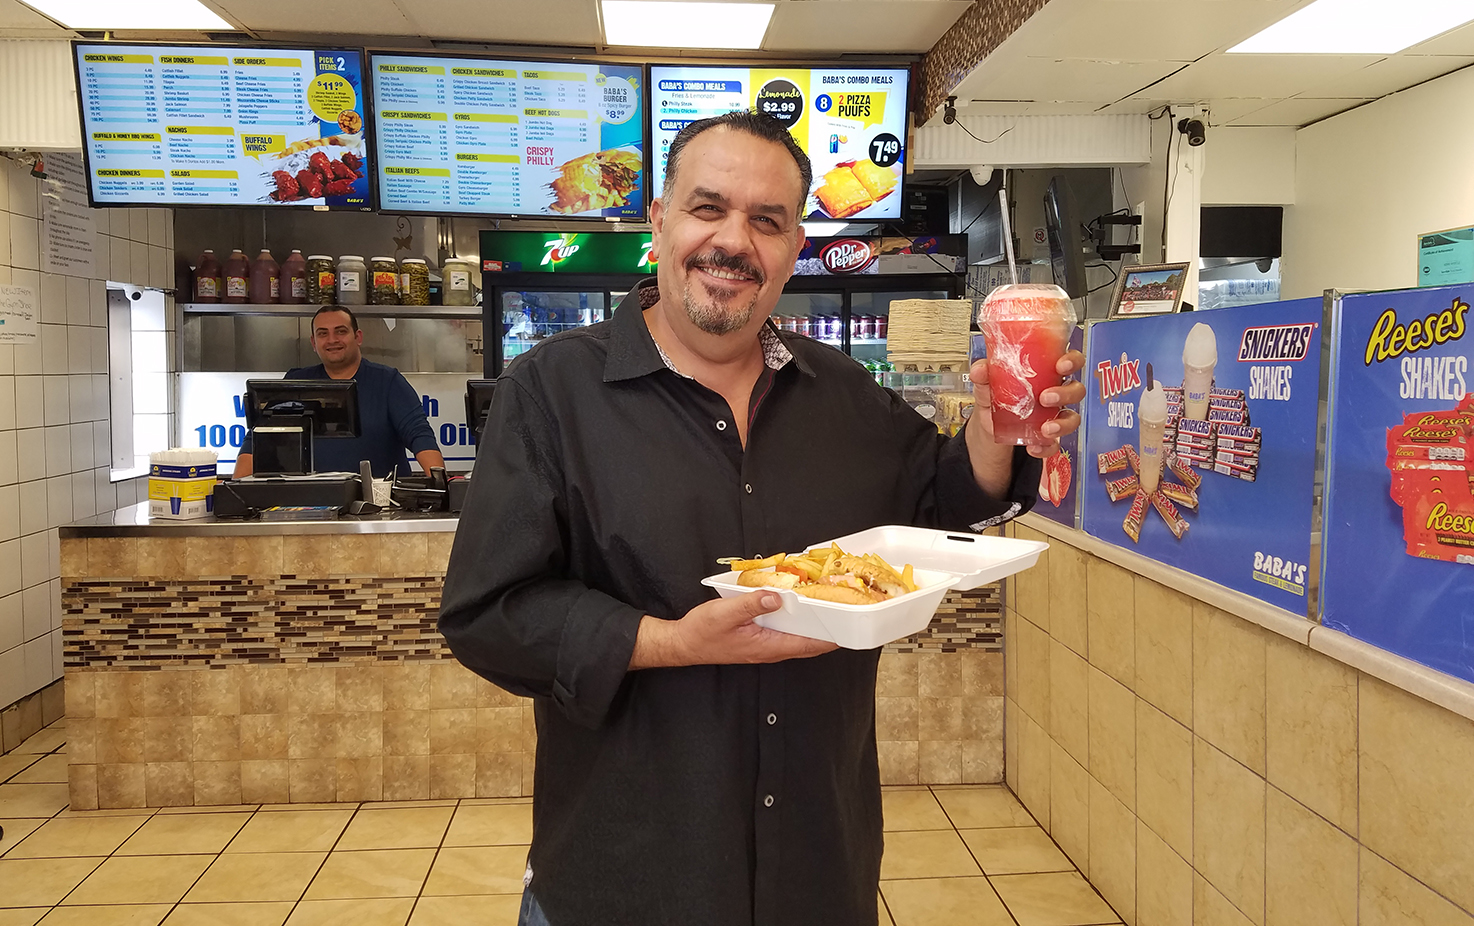 Jordan-native Haitham 'Mario' Allabadi opened the first Baba's Famous Steak and Lemonade restaurant in 1998 in south suburban Country Club Hills. (WBEZ/Monica Eng)